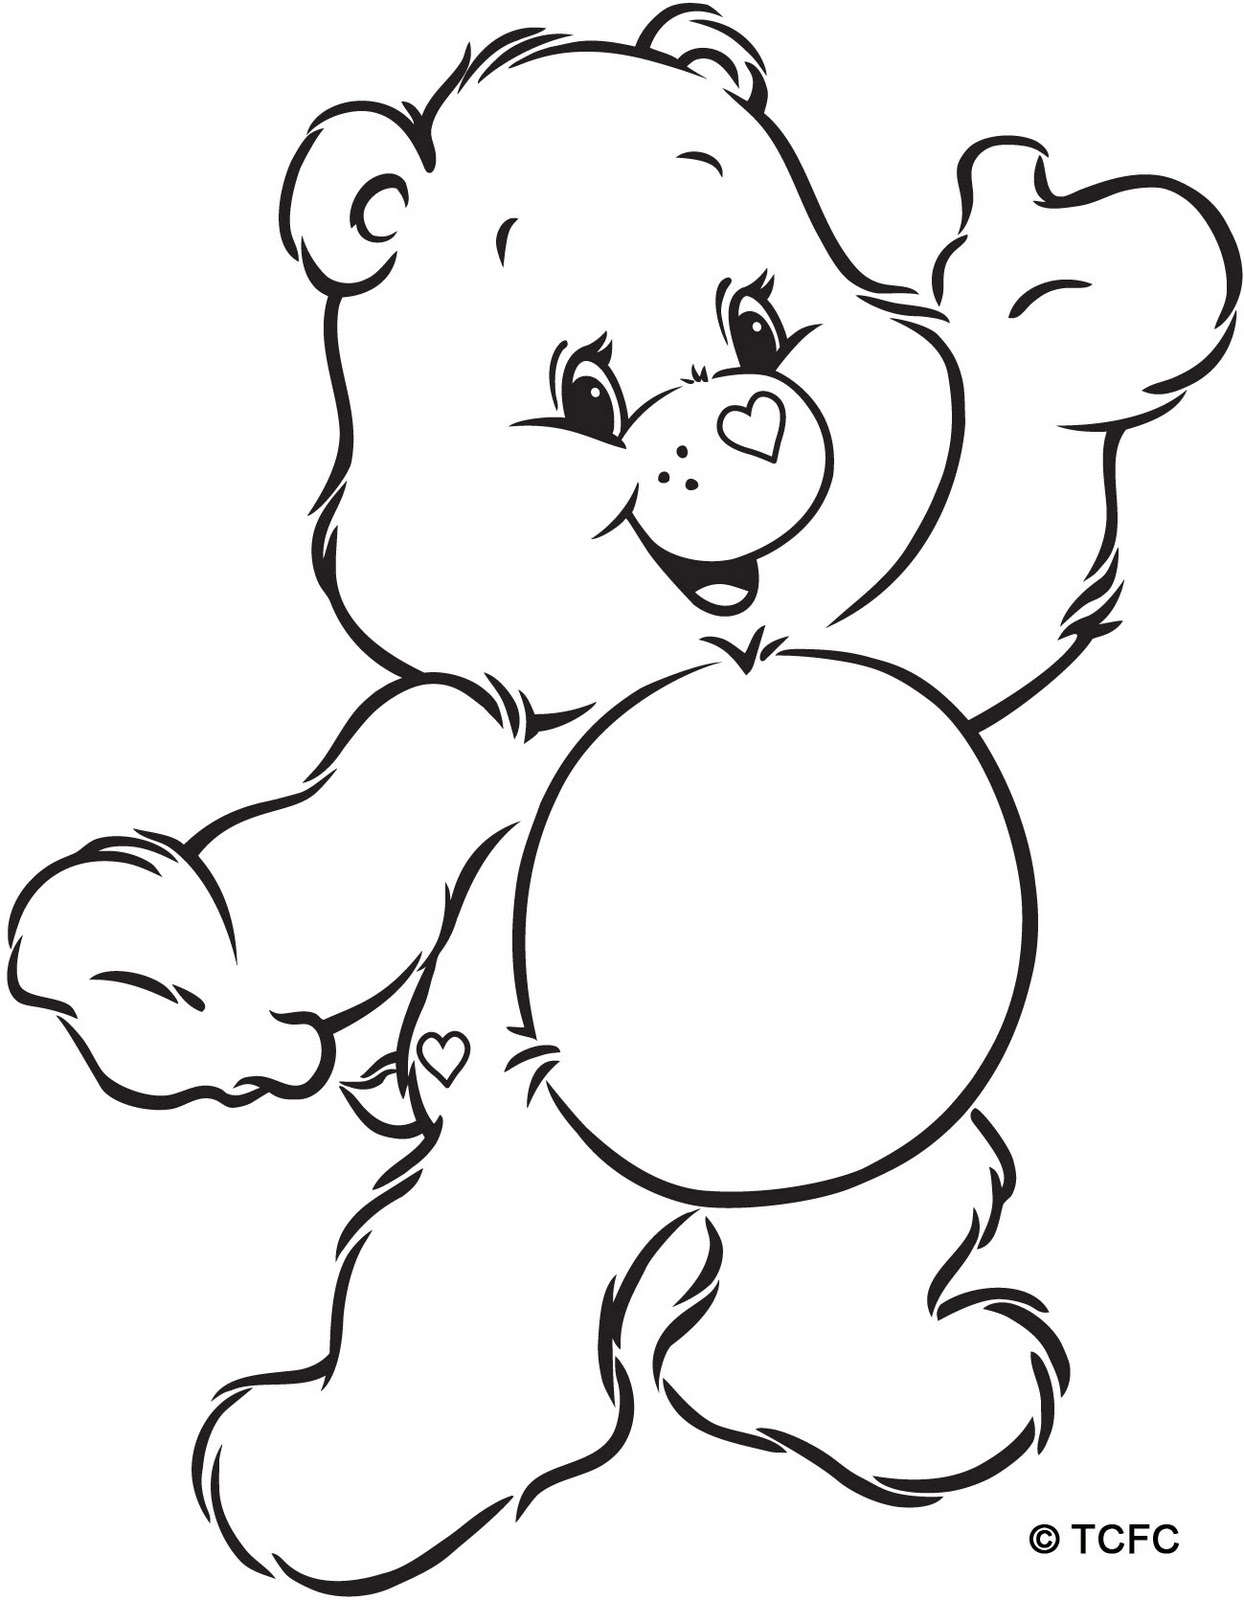 carebear coloring pages - photo#24